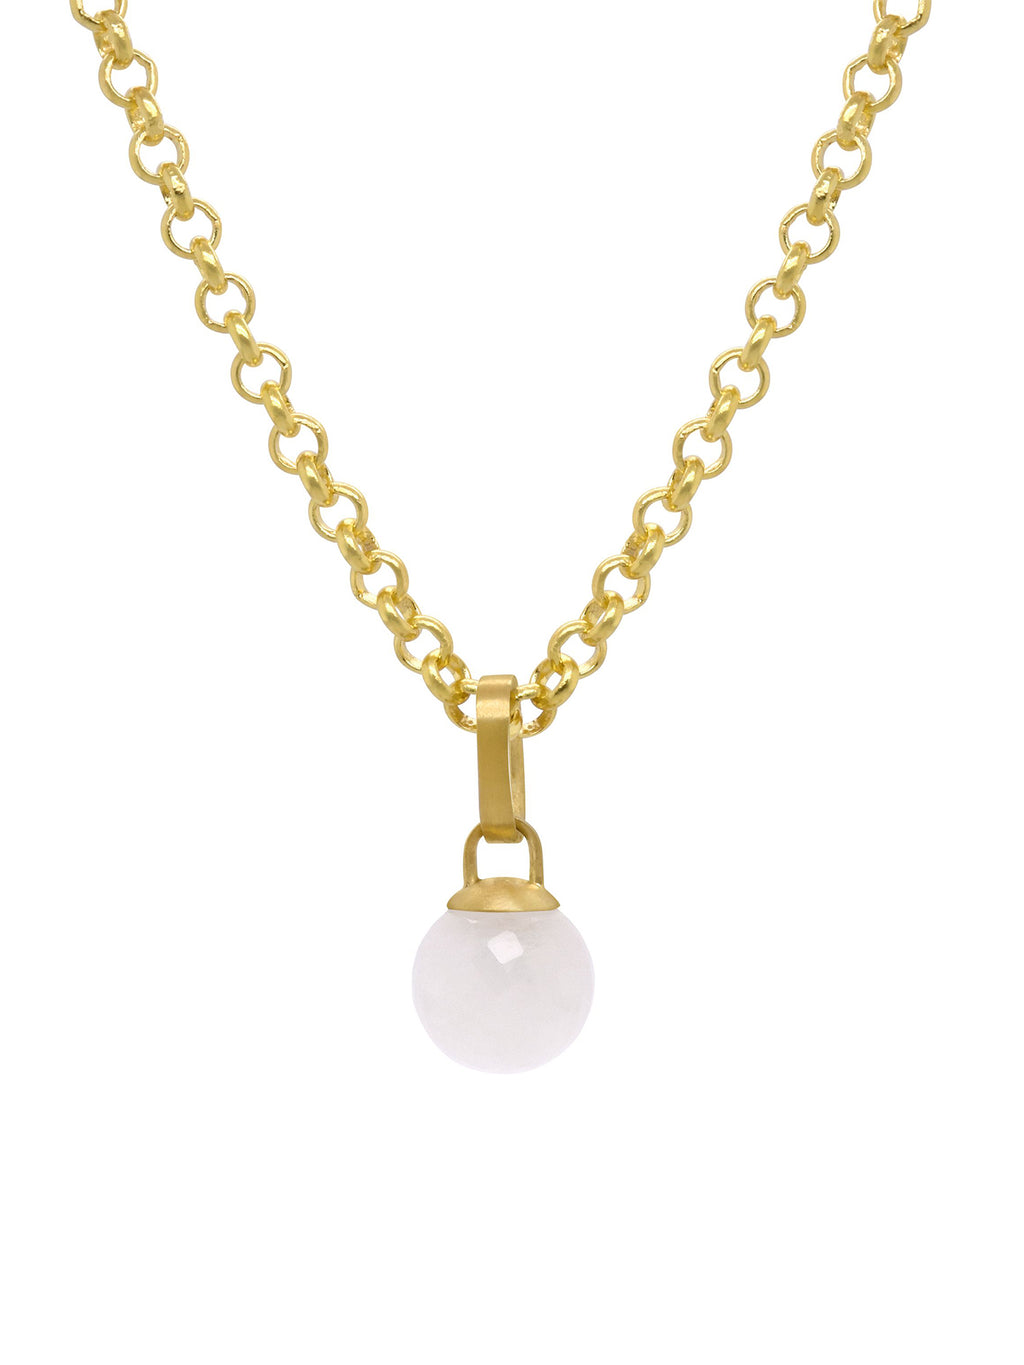 Dean Davidson Manhattan Gemstone Necklace